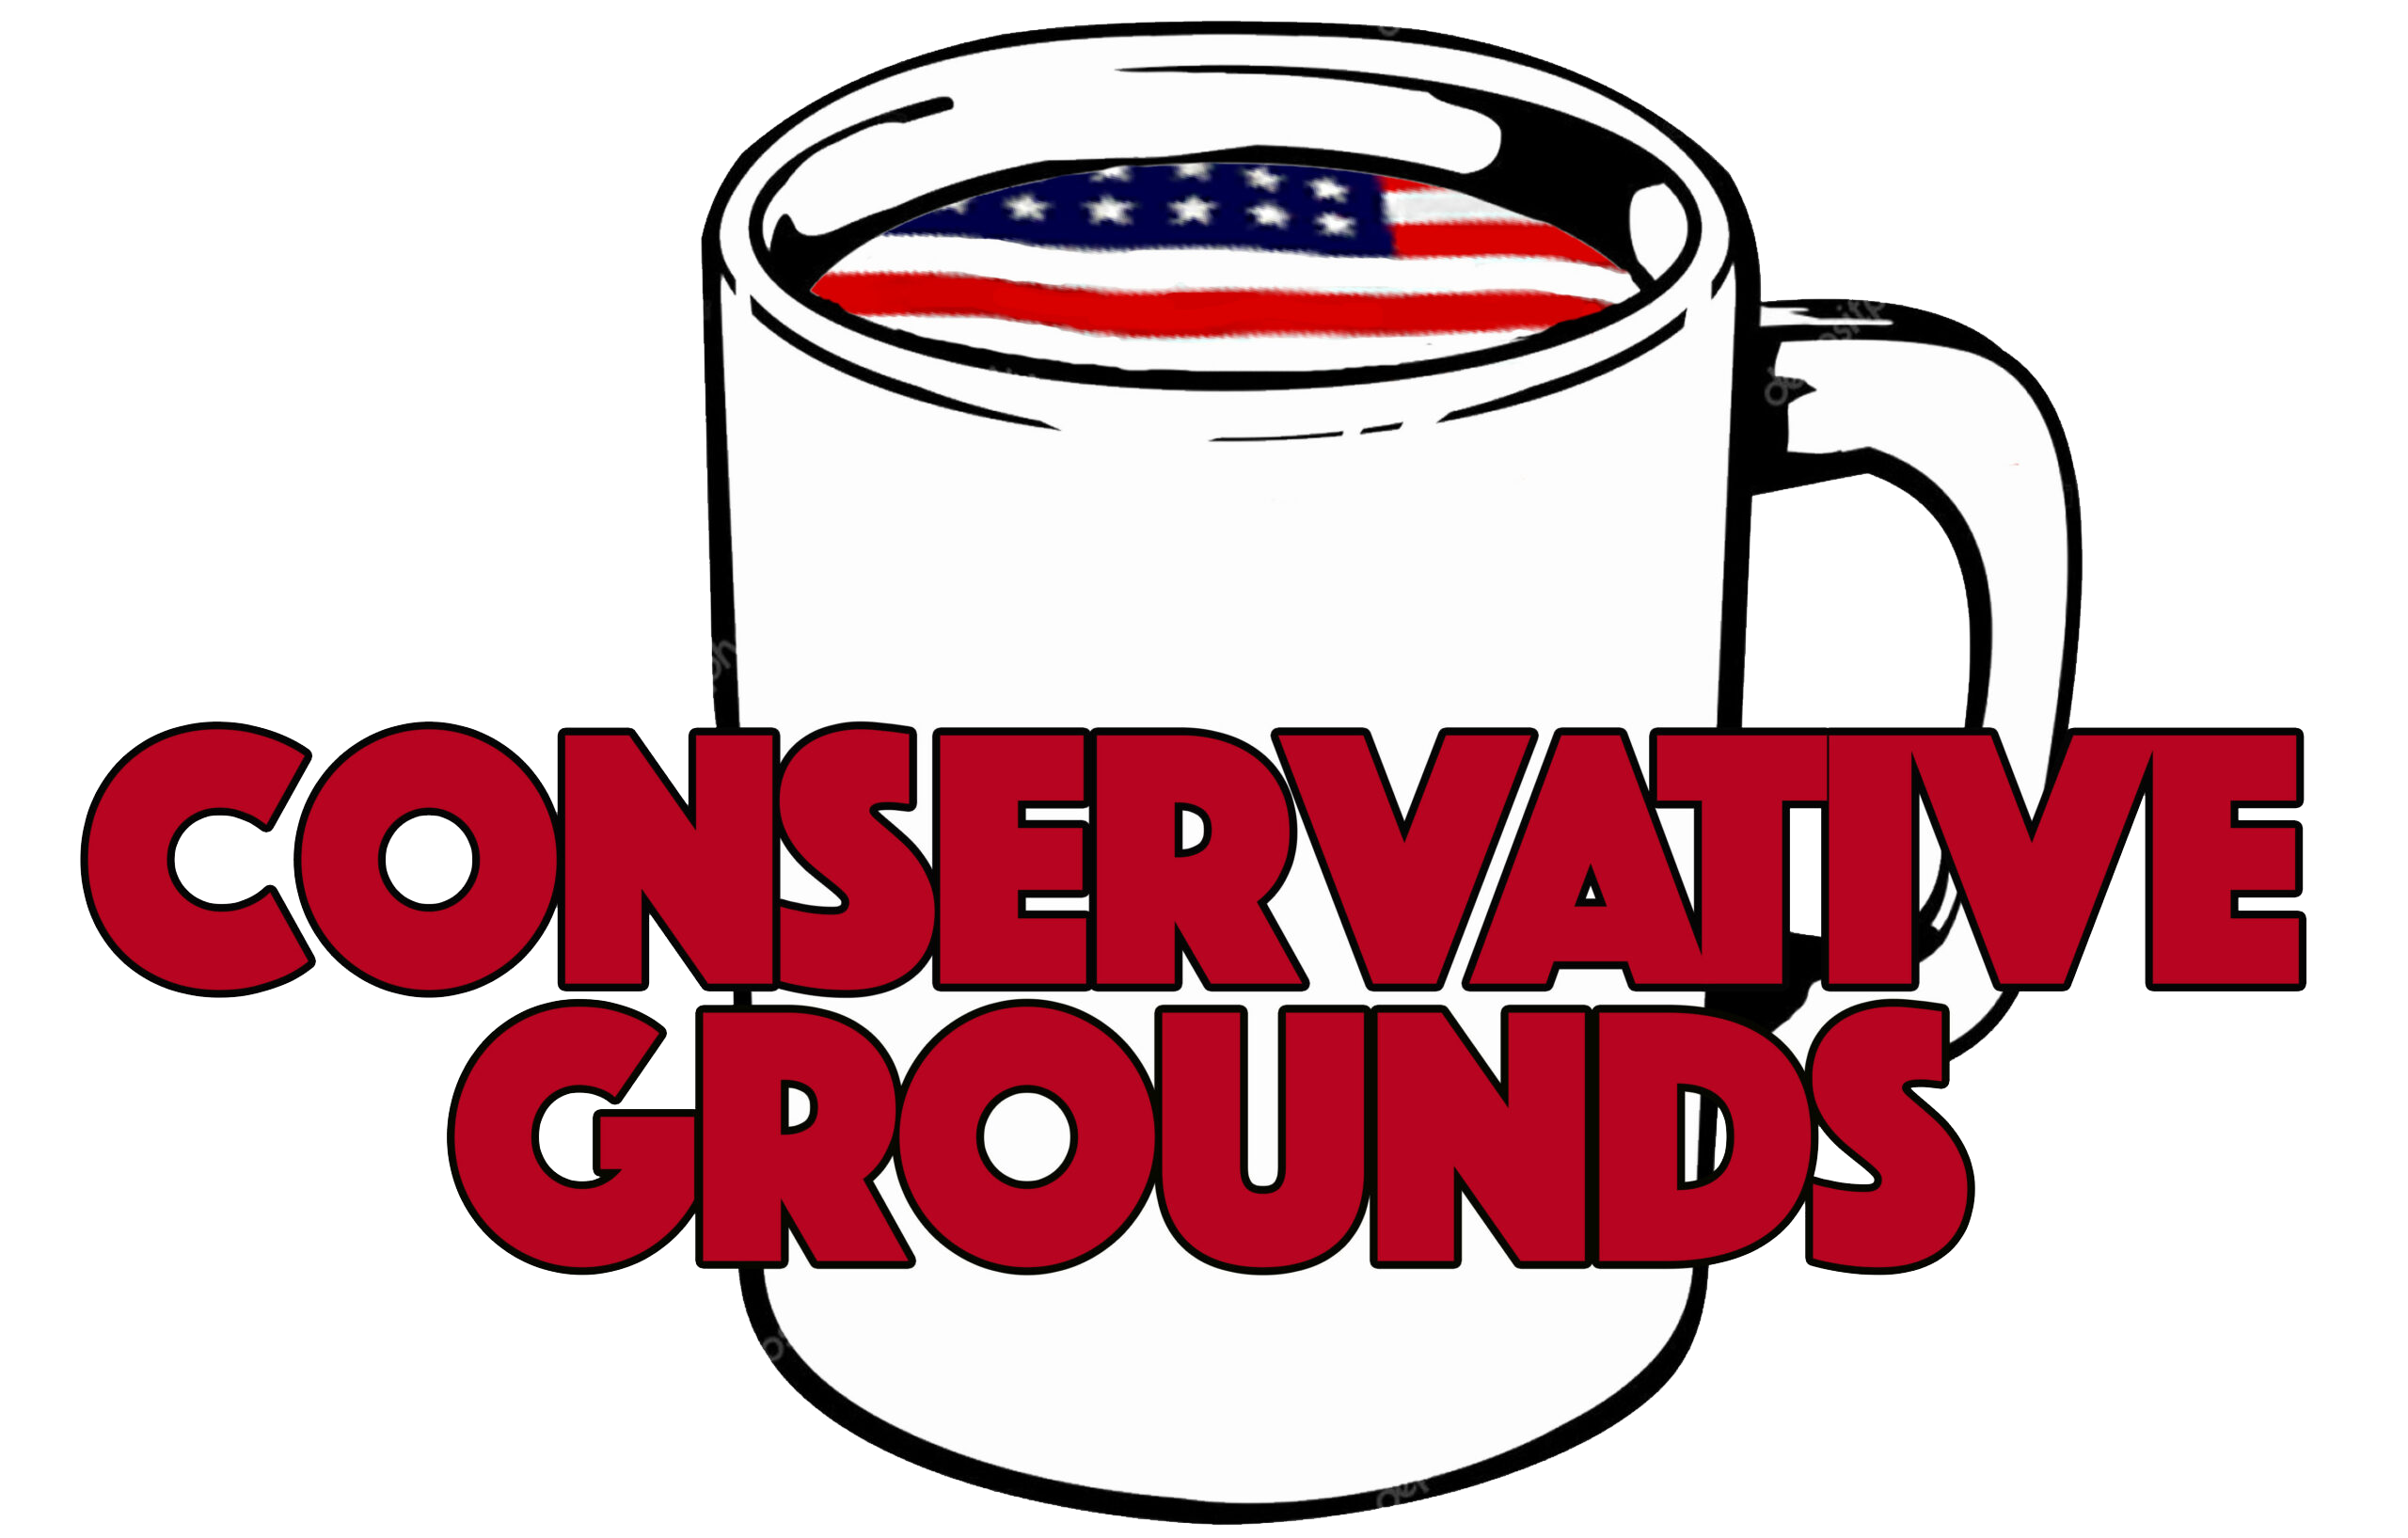 Conservative Grounds